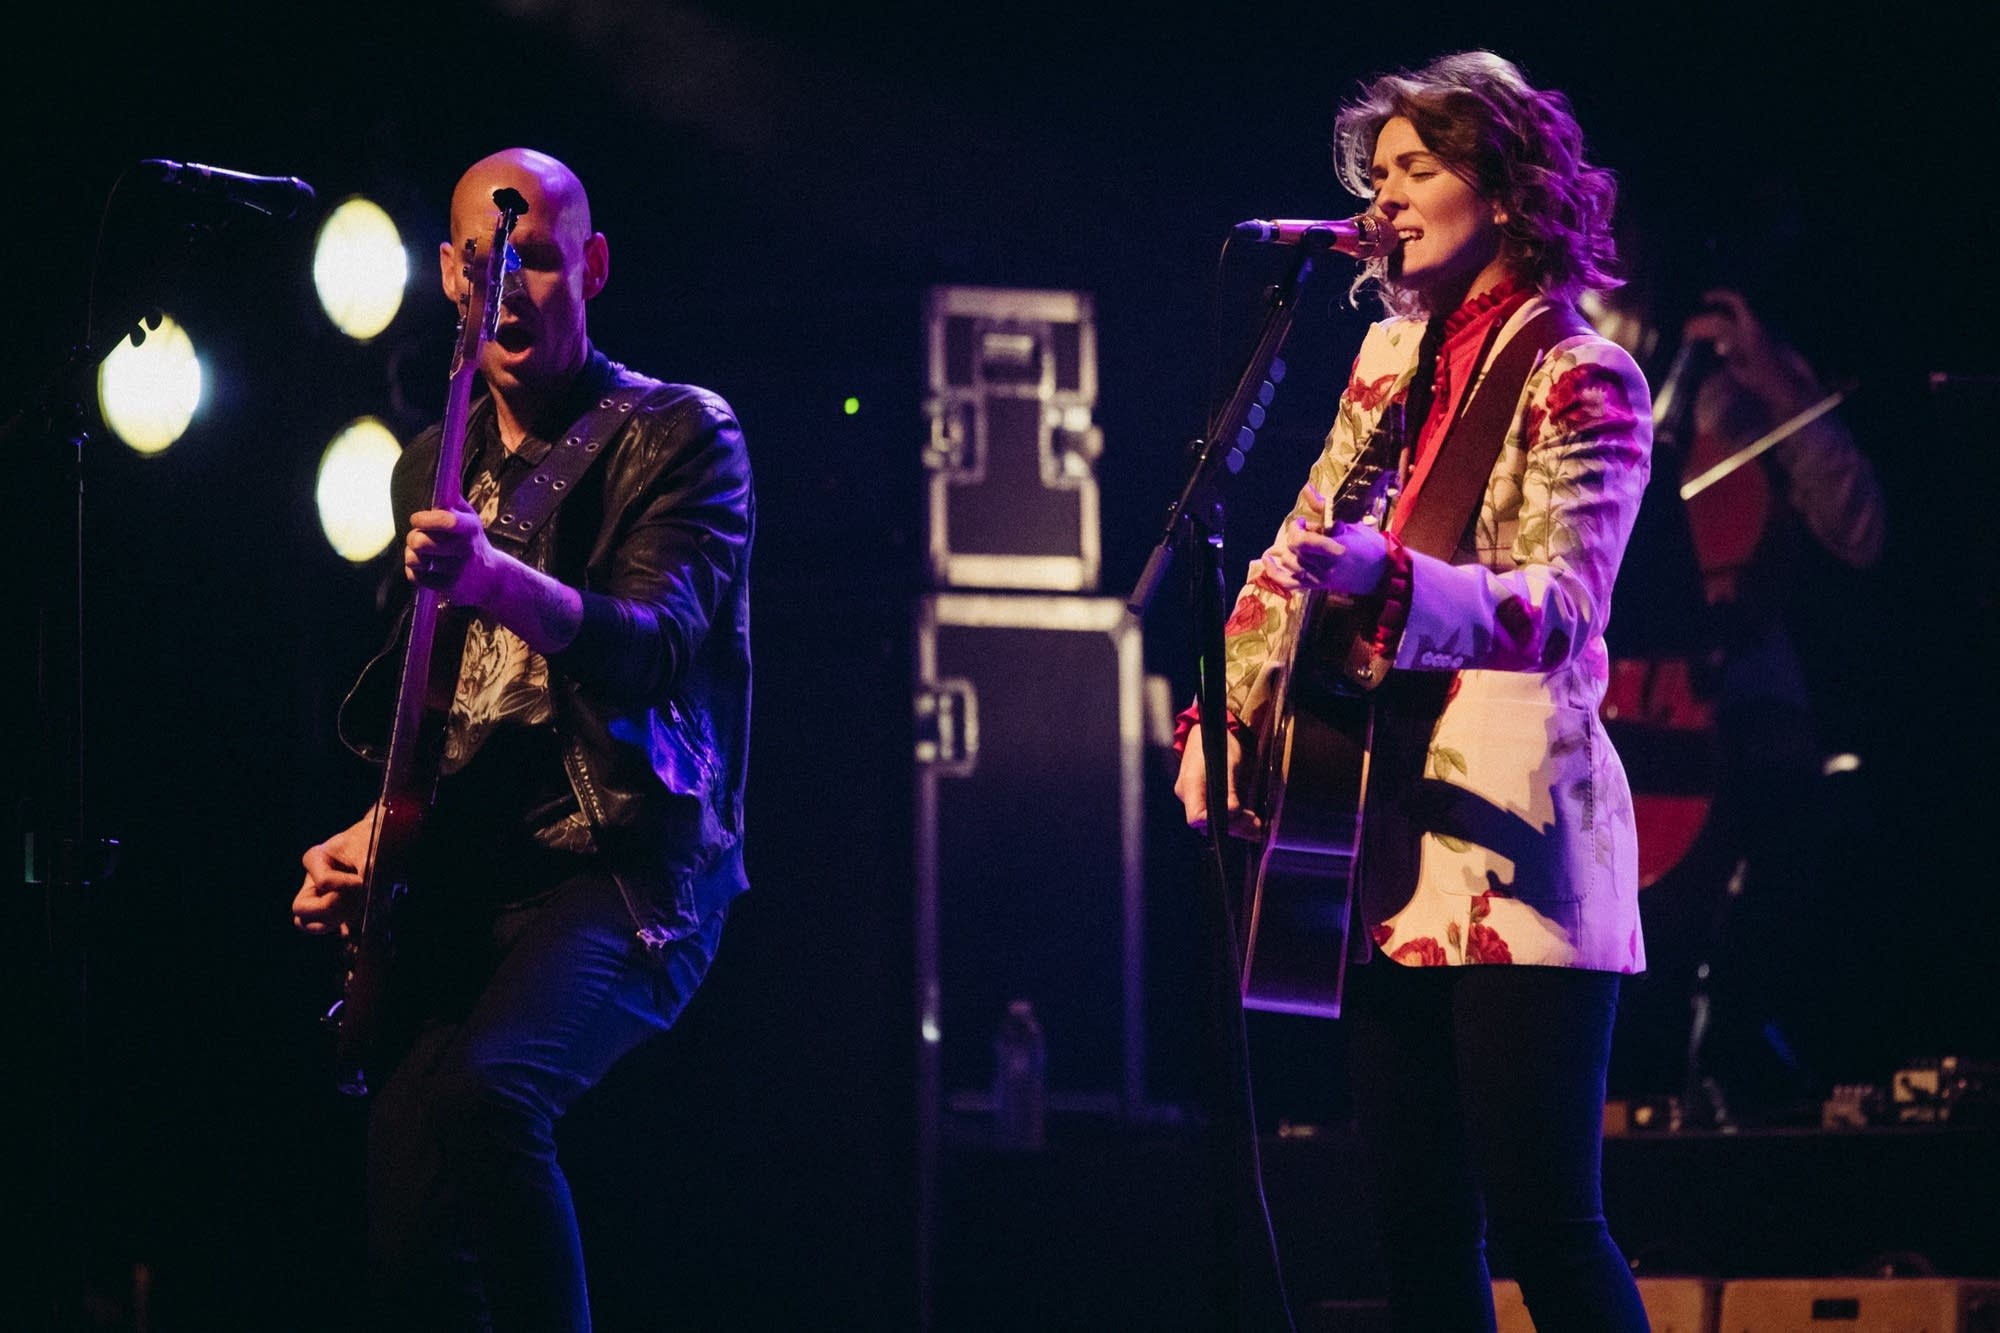 Brandi Carlile in concert at the State Theatre in Minneapolis